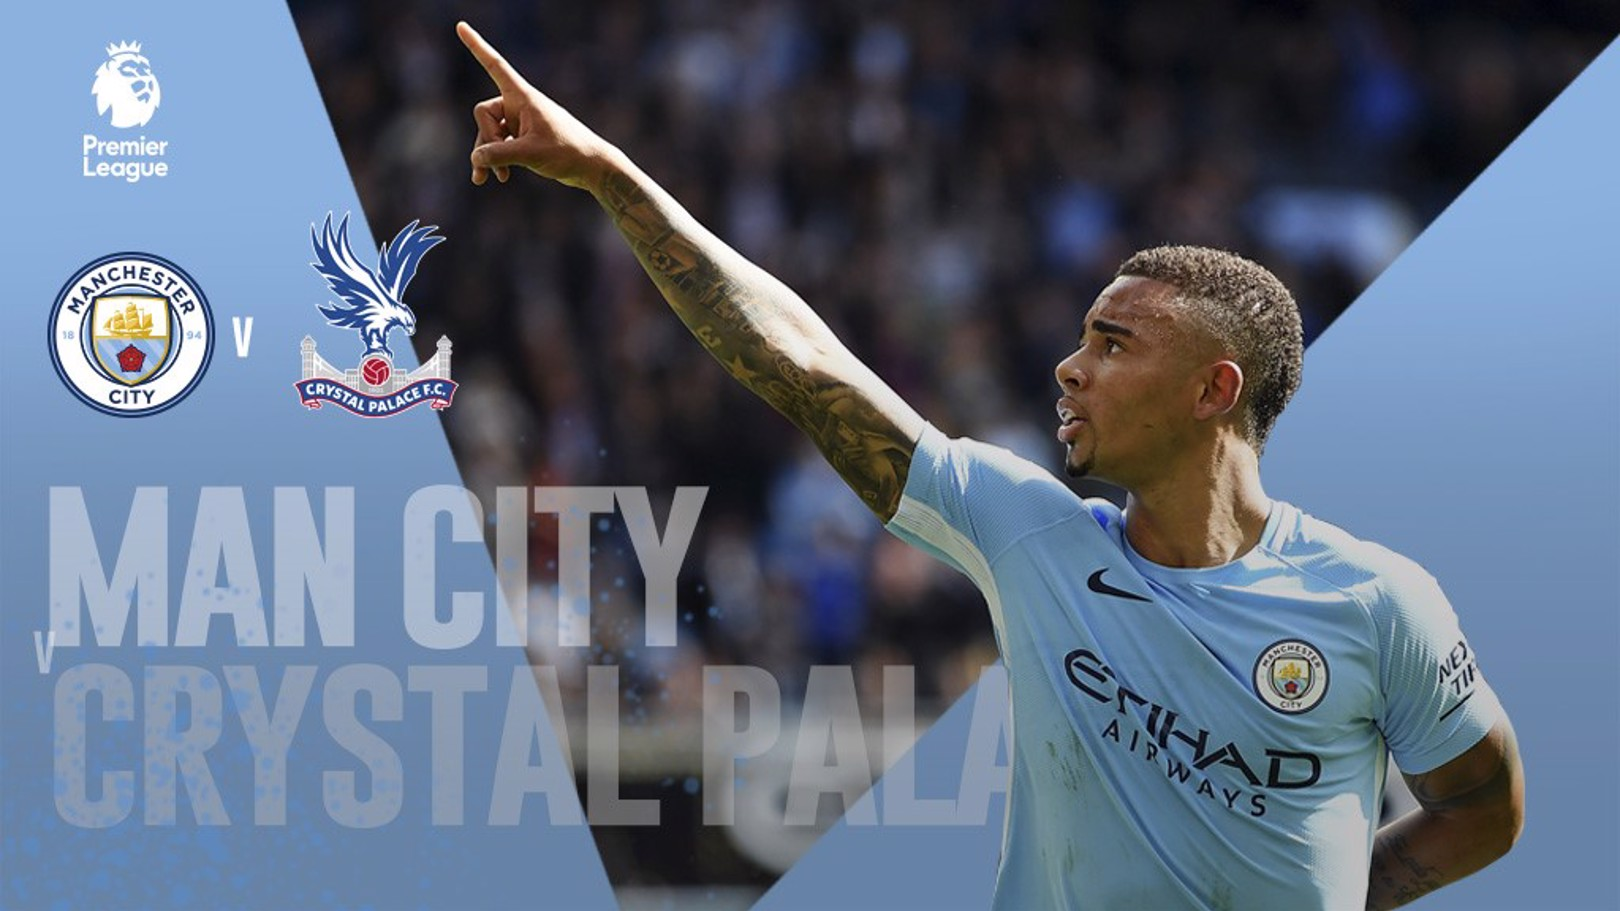 City vs Palace: En direct!